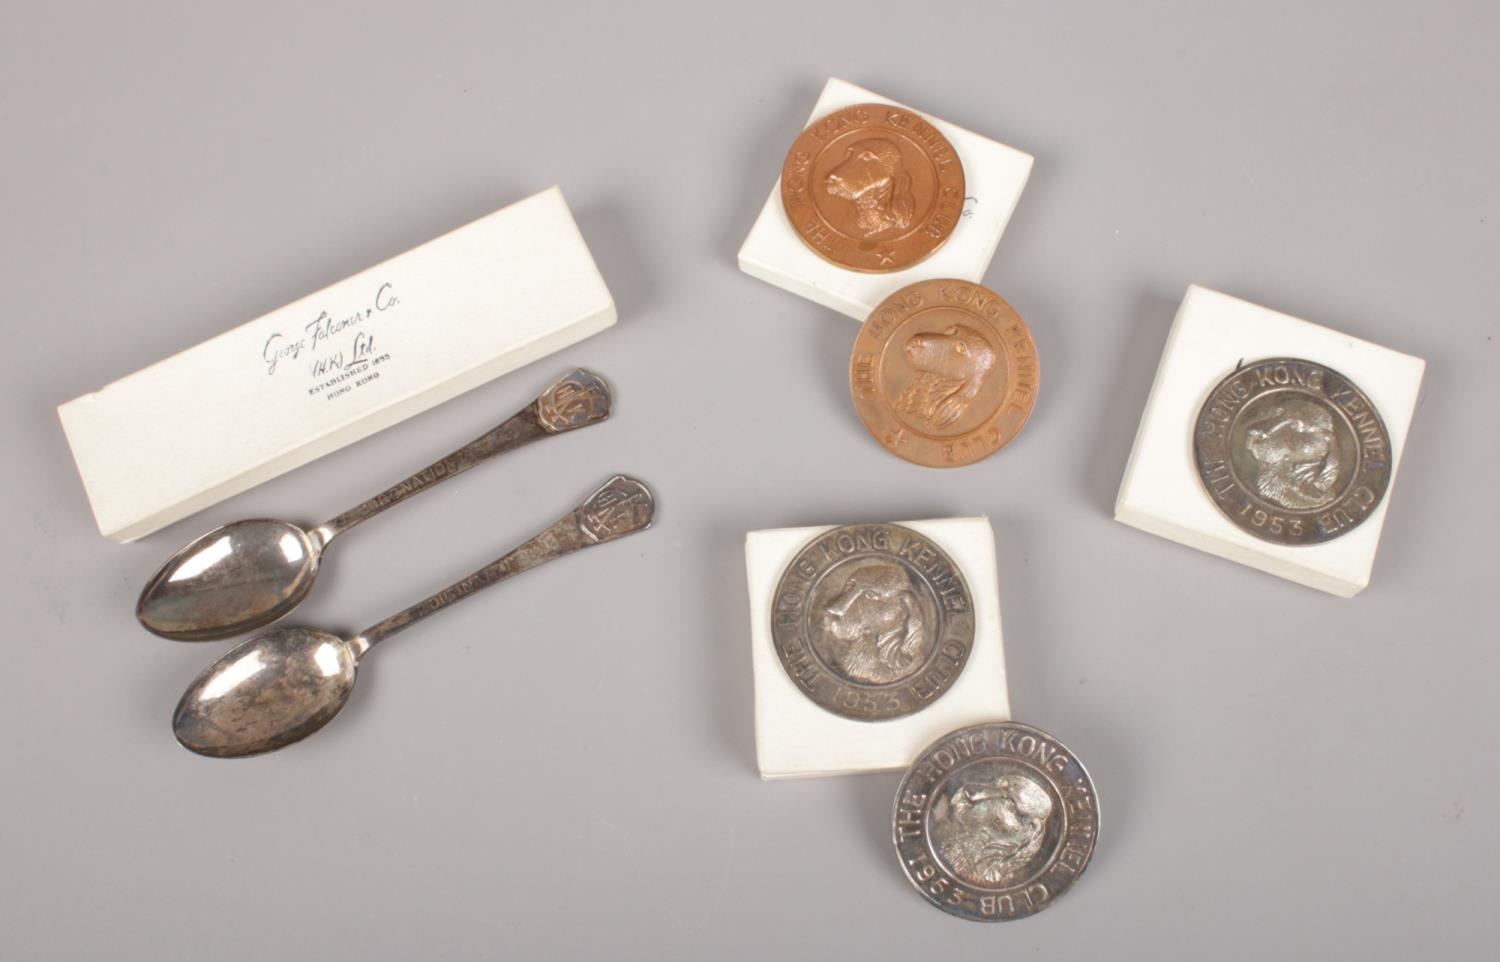 A collection of mainly silver items by George Falconer & Co, Hong Kong. Includes spoons and medals.